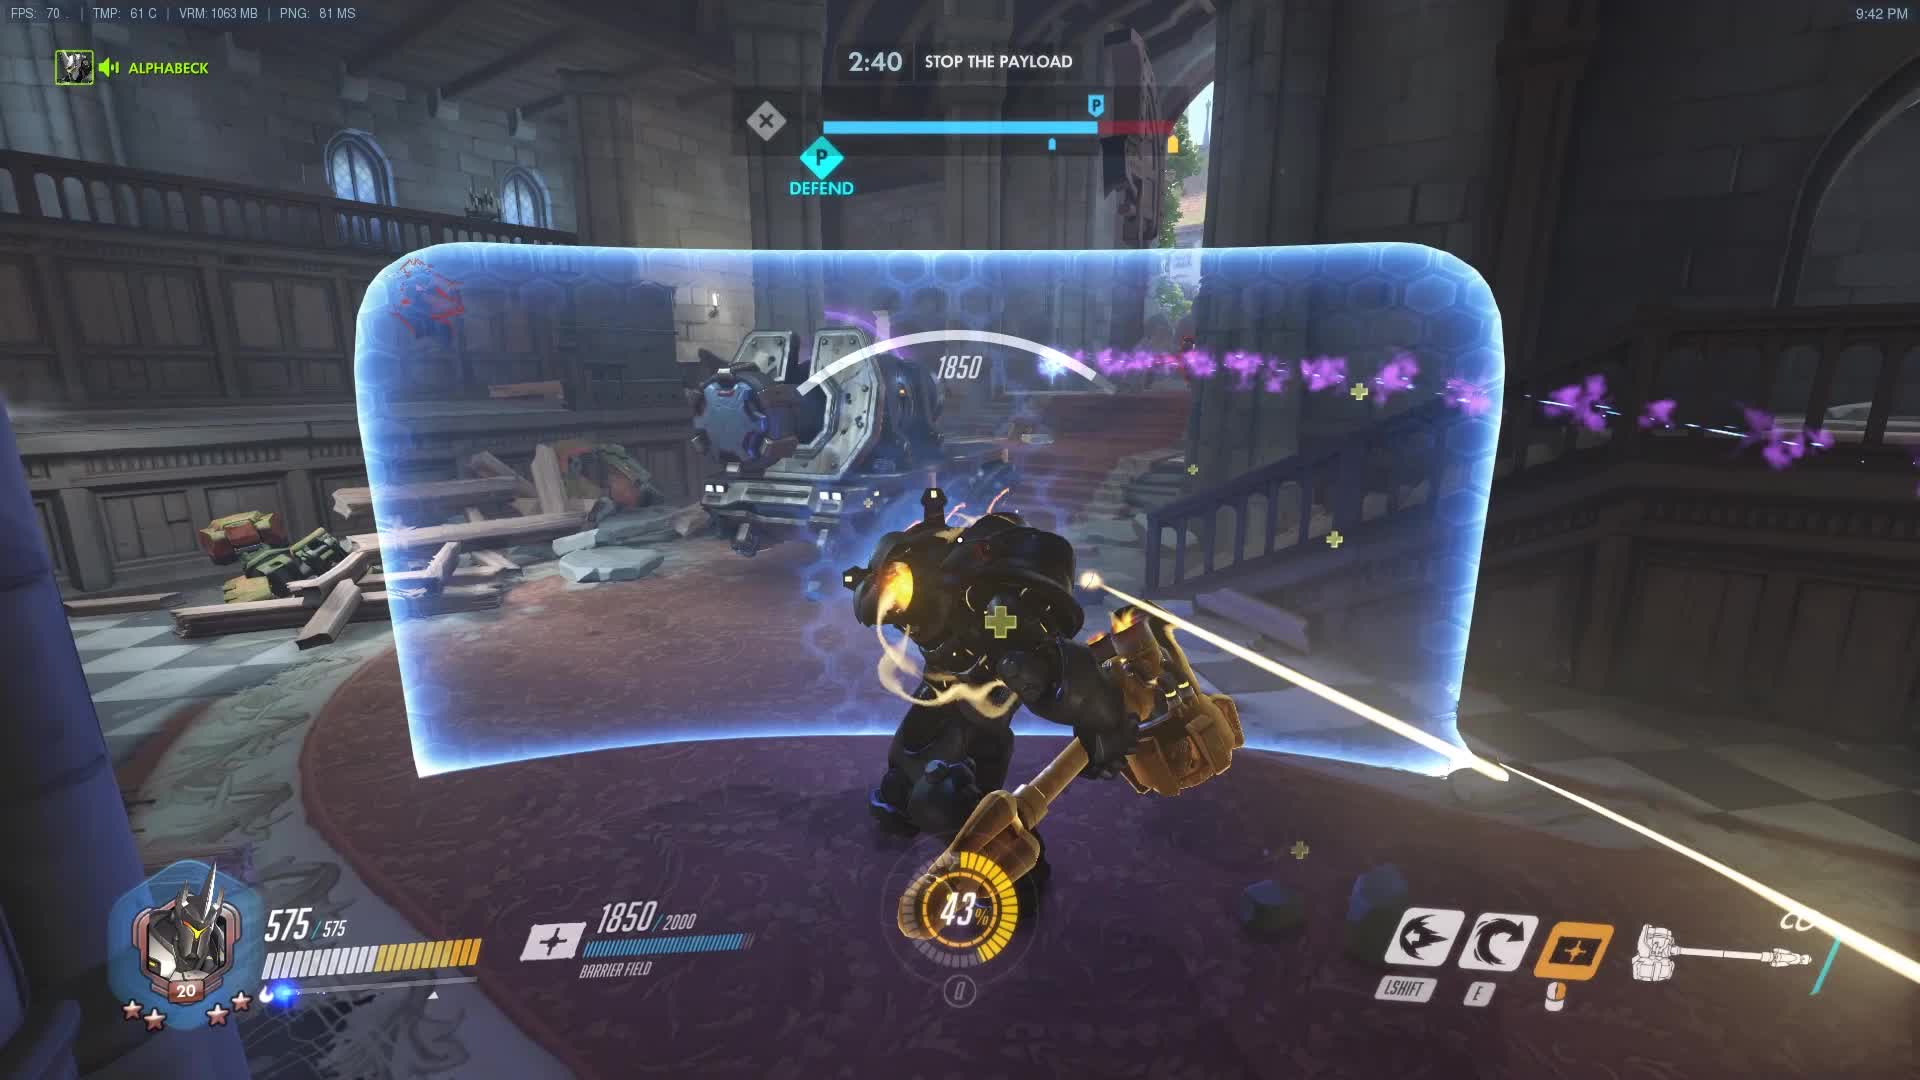 blizzard, bs, bullshit, dumb, rein, reinhardt, sombra, thanks jeff, wtf, hacked while charging GIFs